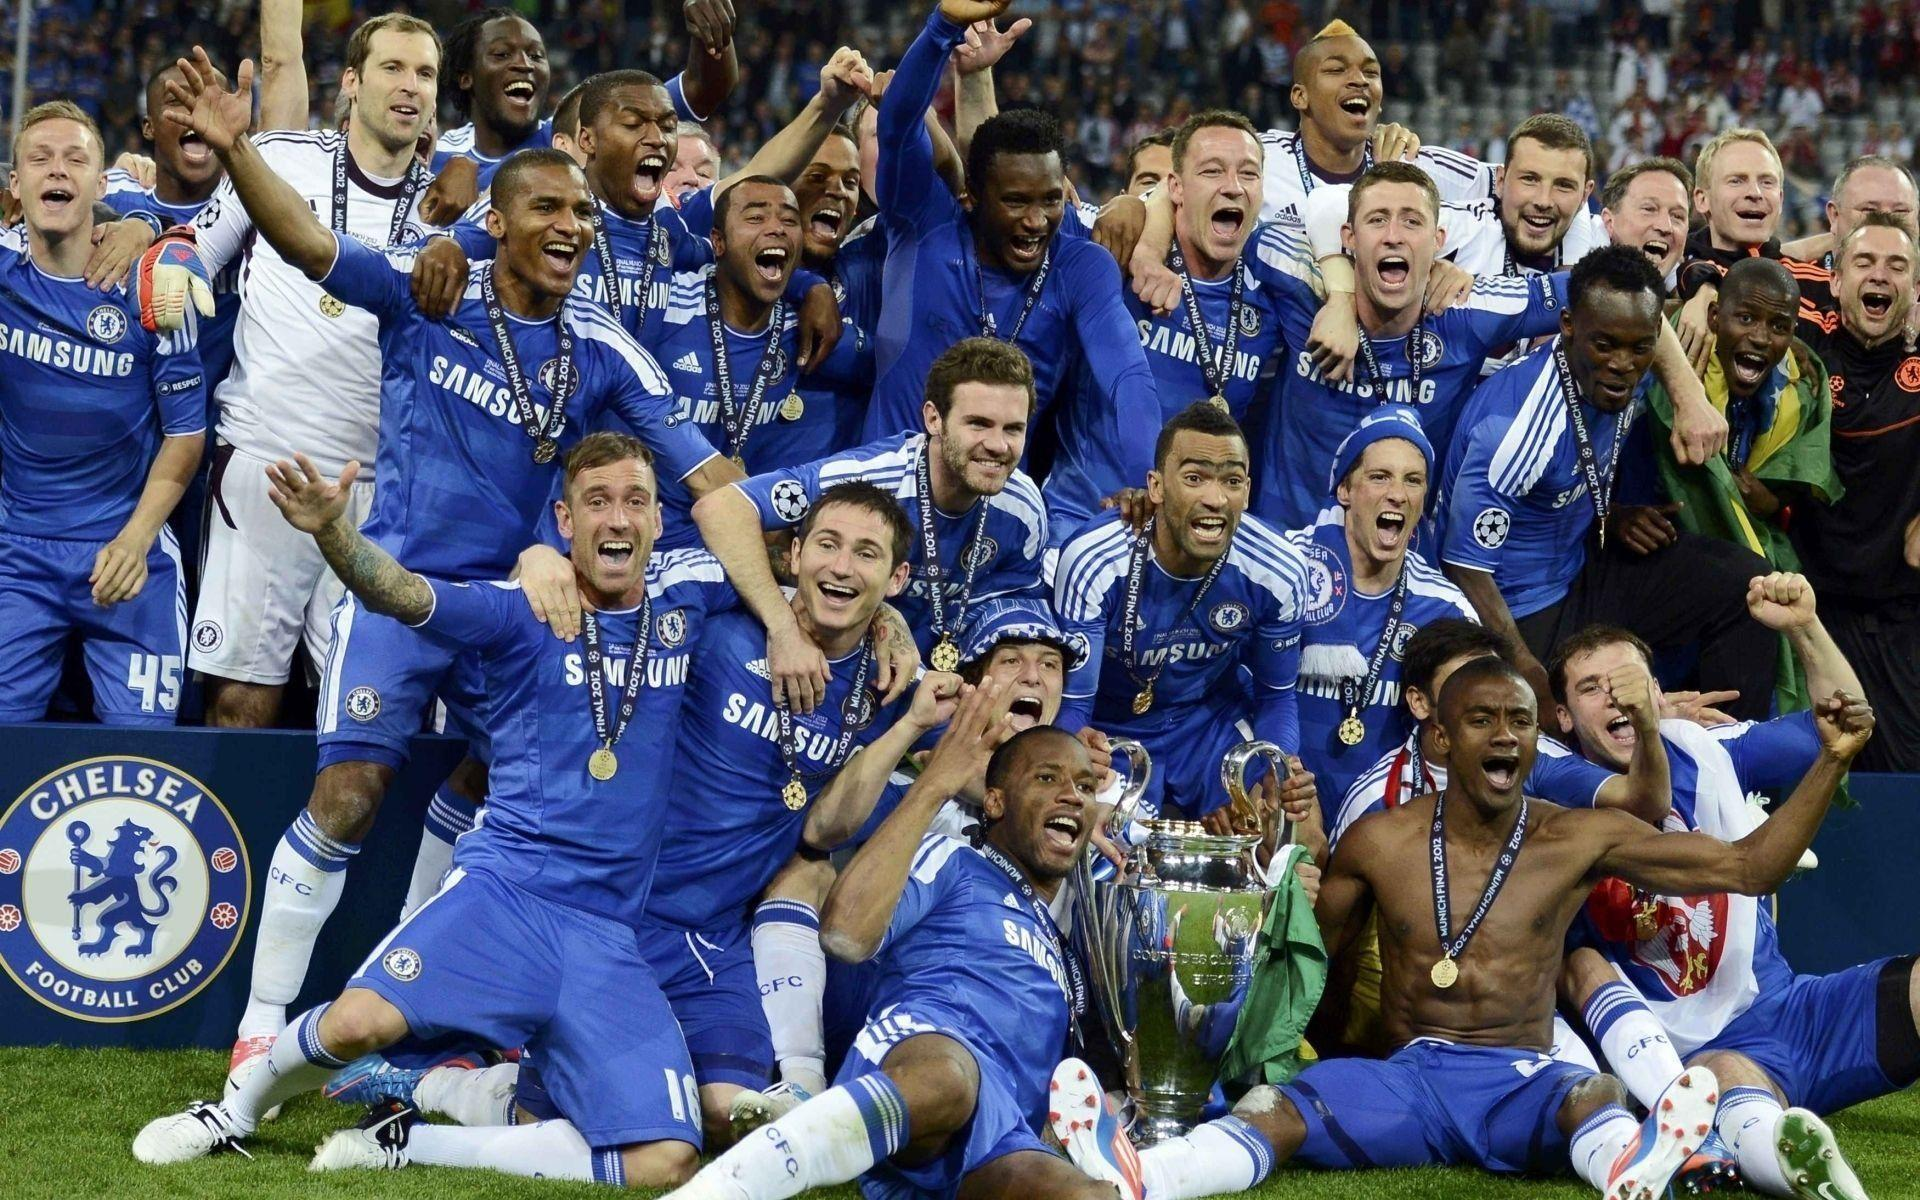 Download Wallpaper Chelsea Champions League 2012 Hd